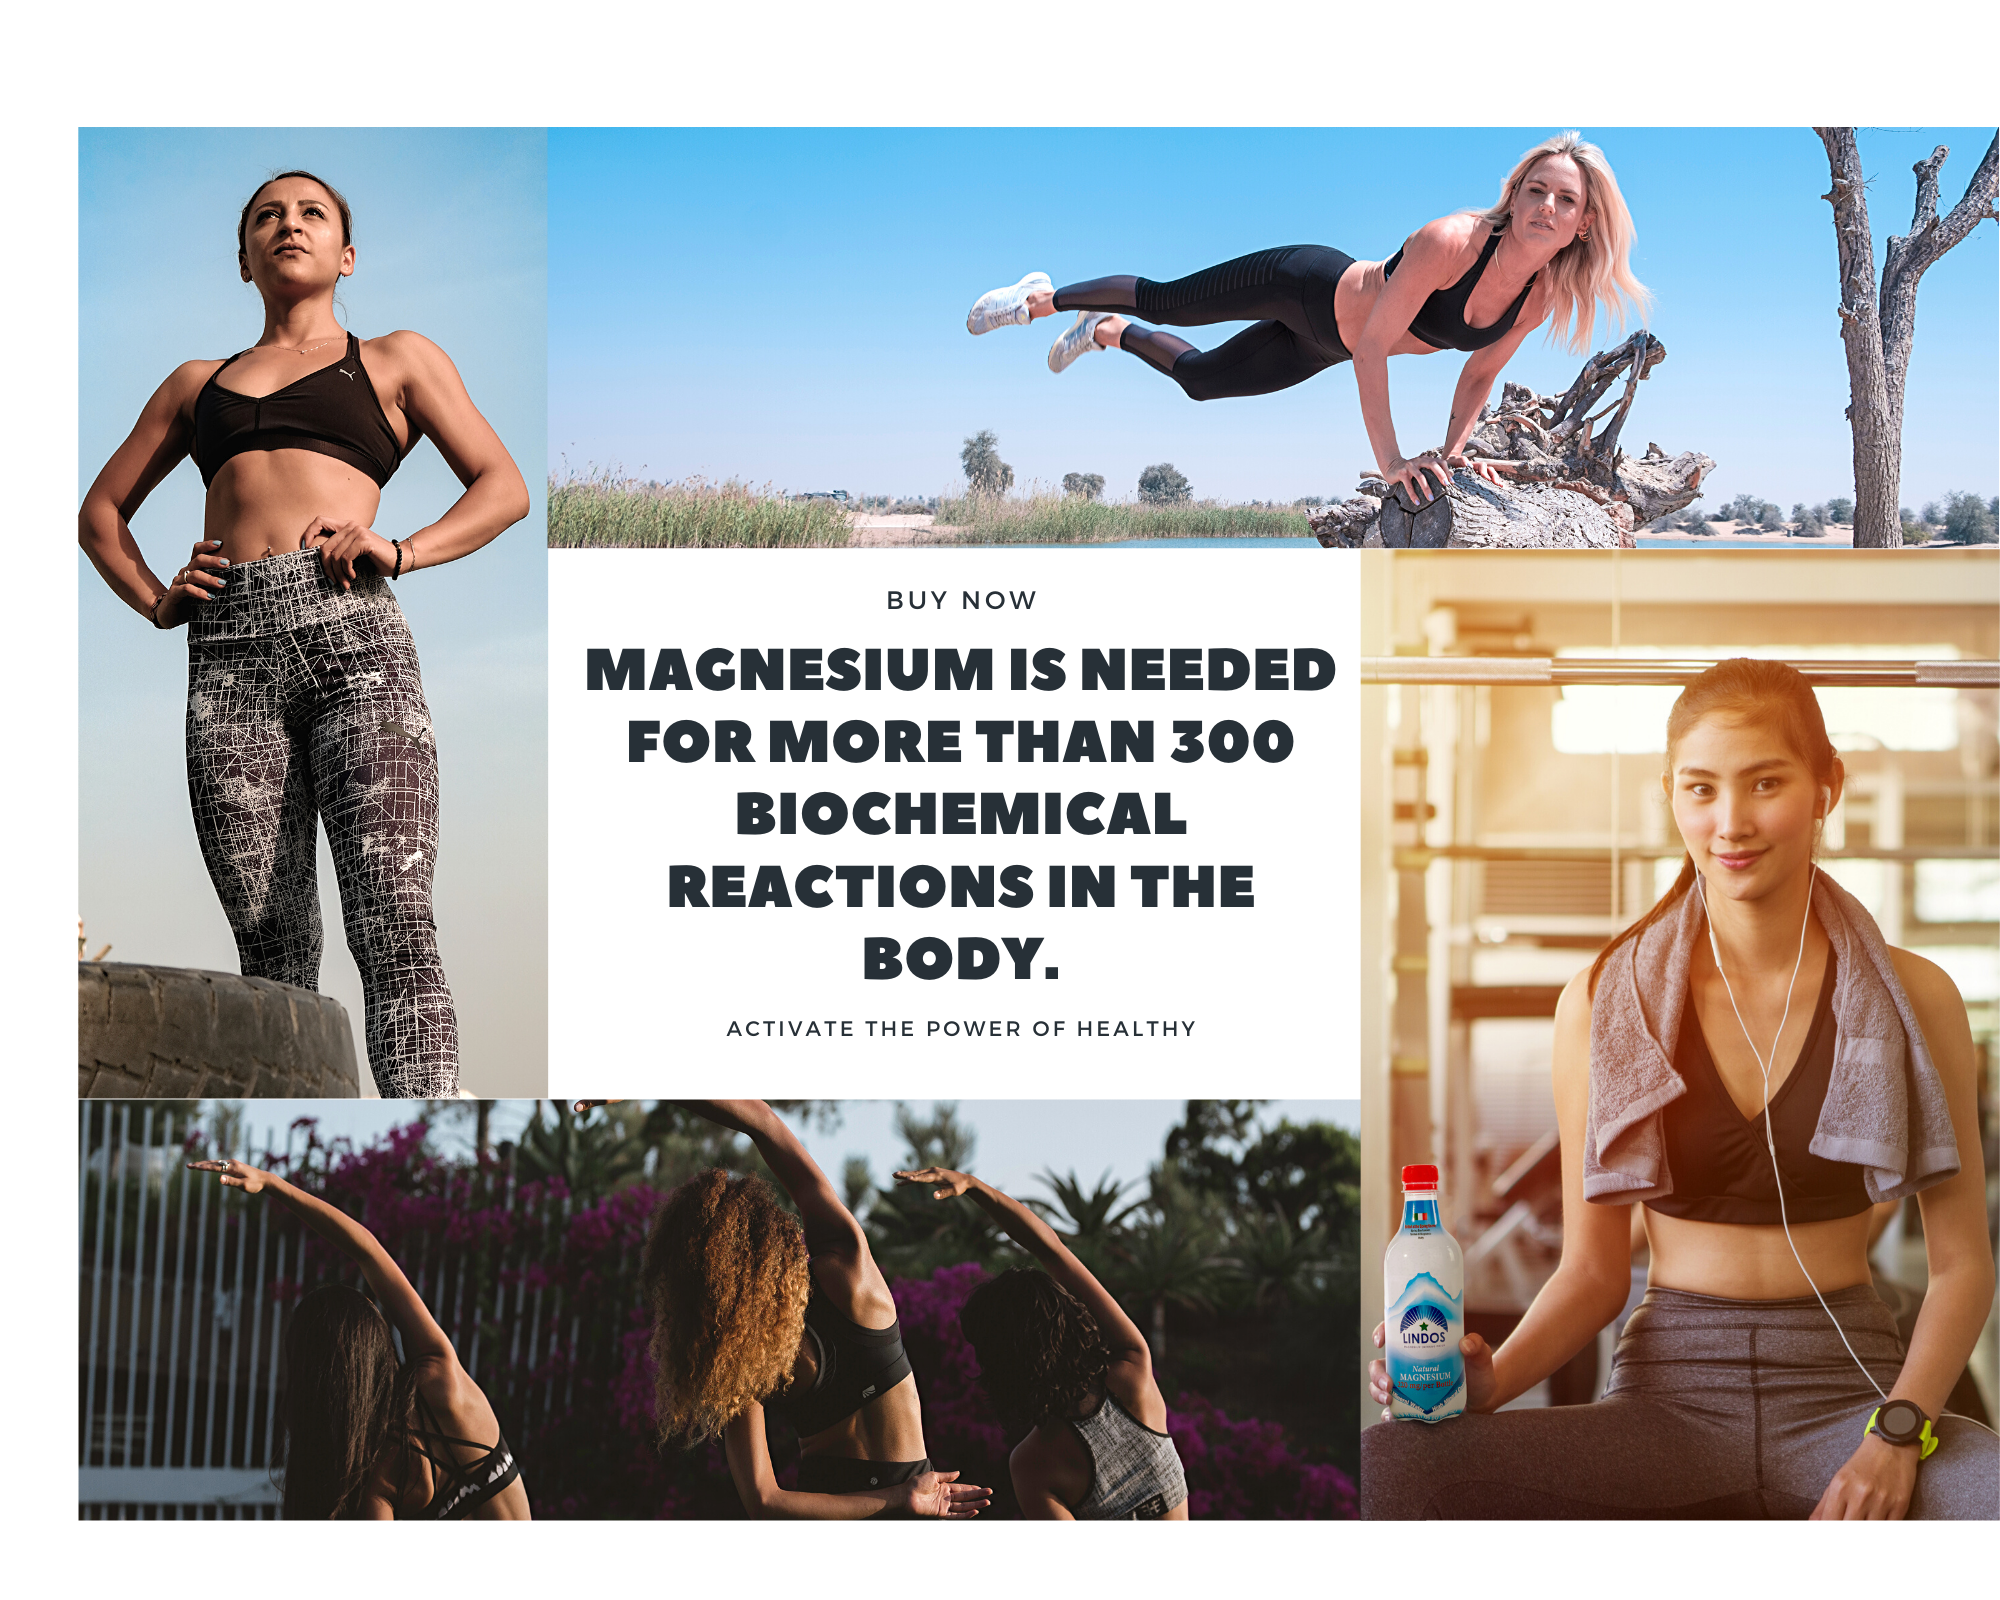 Magnesium is needed for more than 300 bi